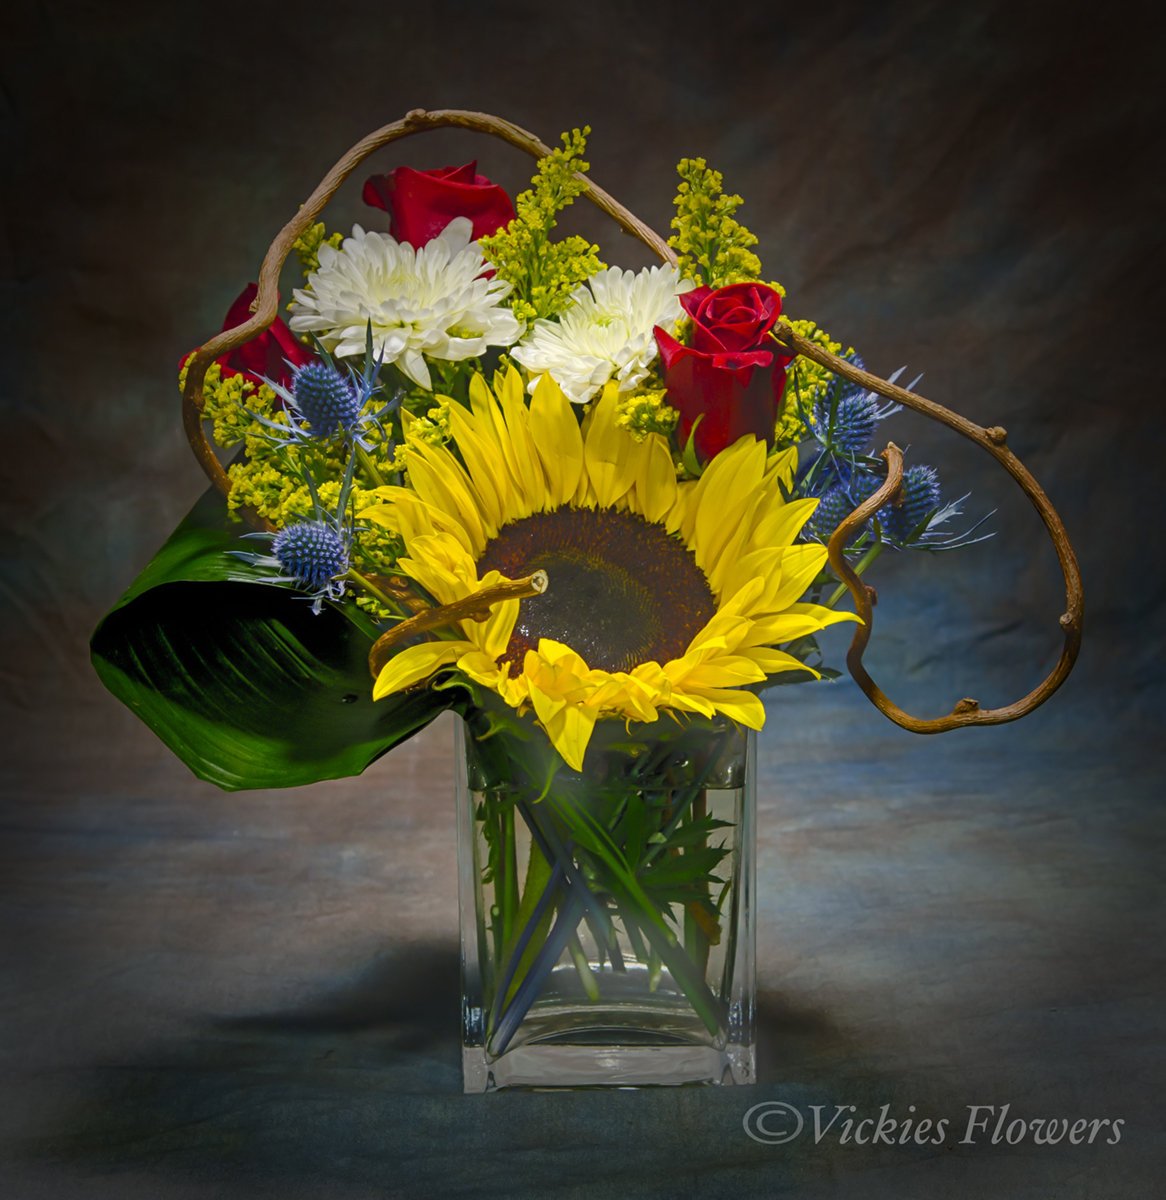 Birthday anniversary thank you congratulations vickies flowers bouquet u 024 45 plus tax and delivery beautiful and brightly colored spring and summer arrangement of yellow sunflower red roses daisies in a clear dhlflorist Image collections